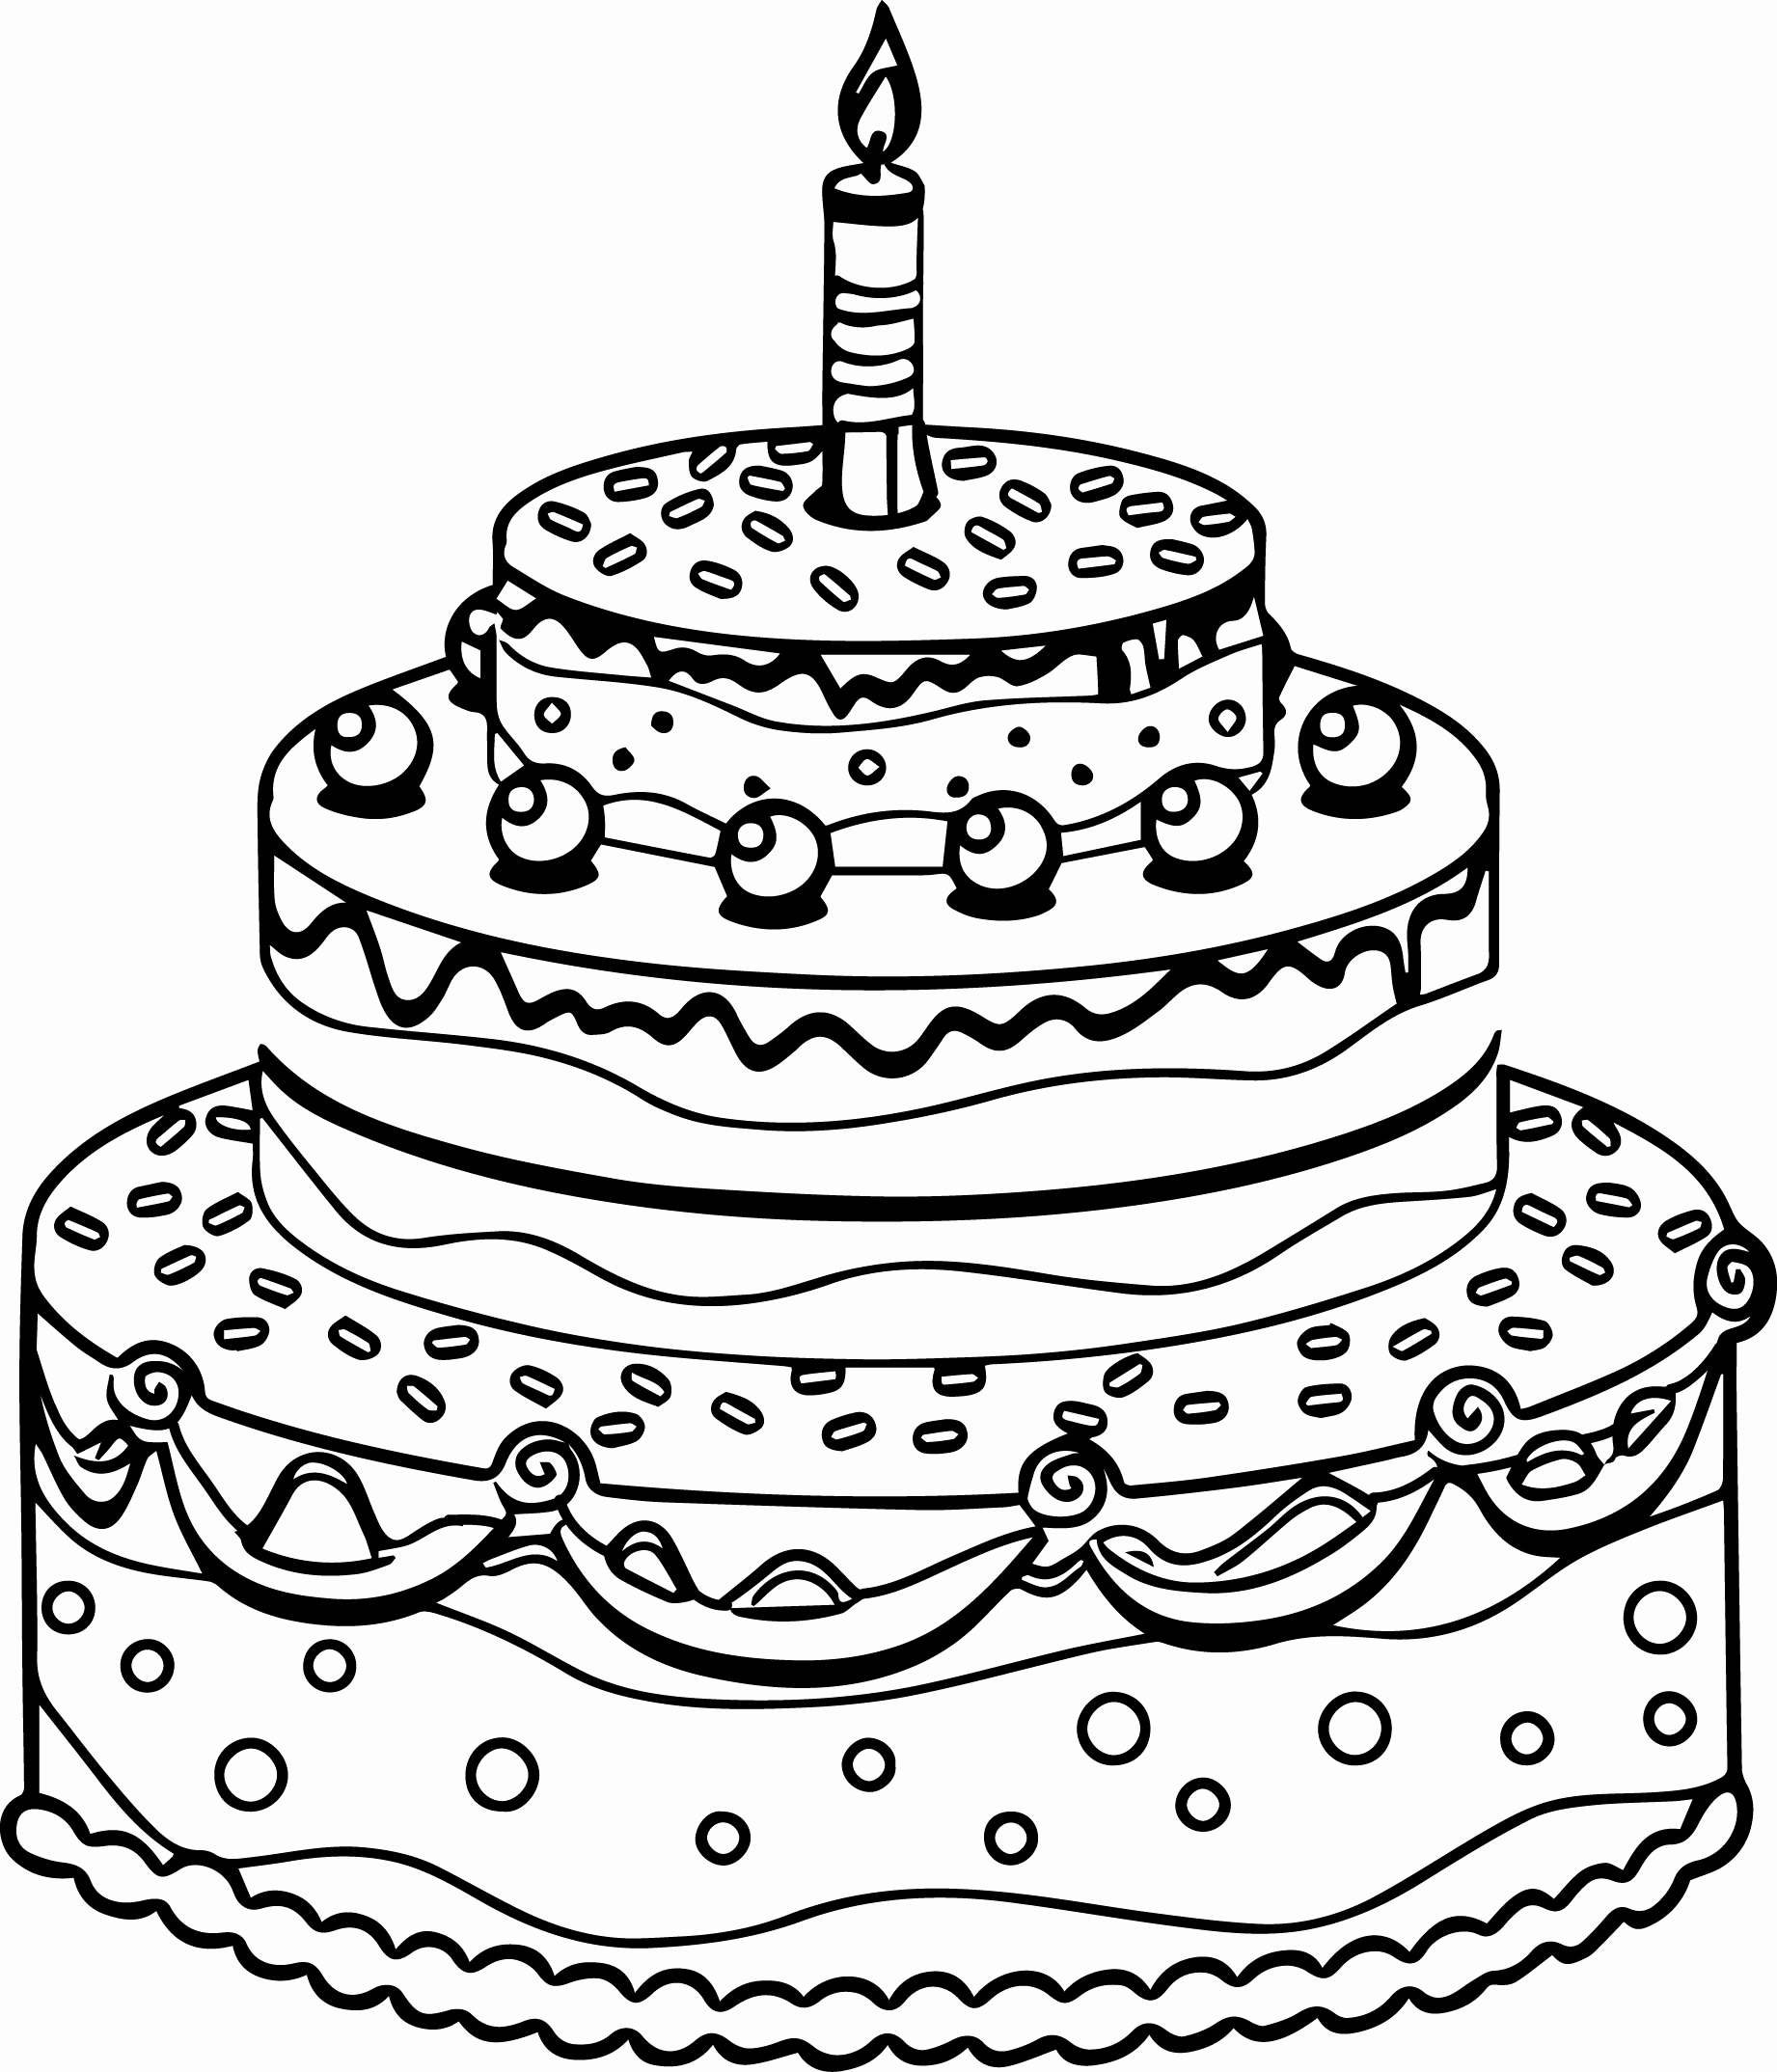 Birthday Cake Coloring Page At Getcolorings